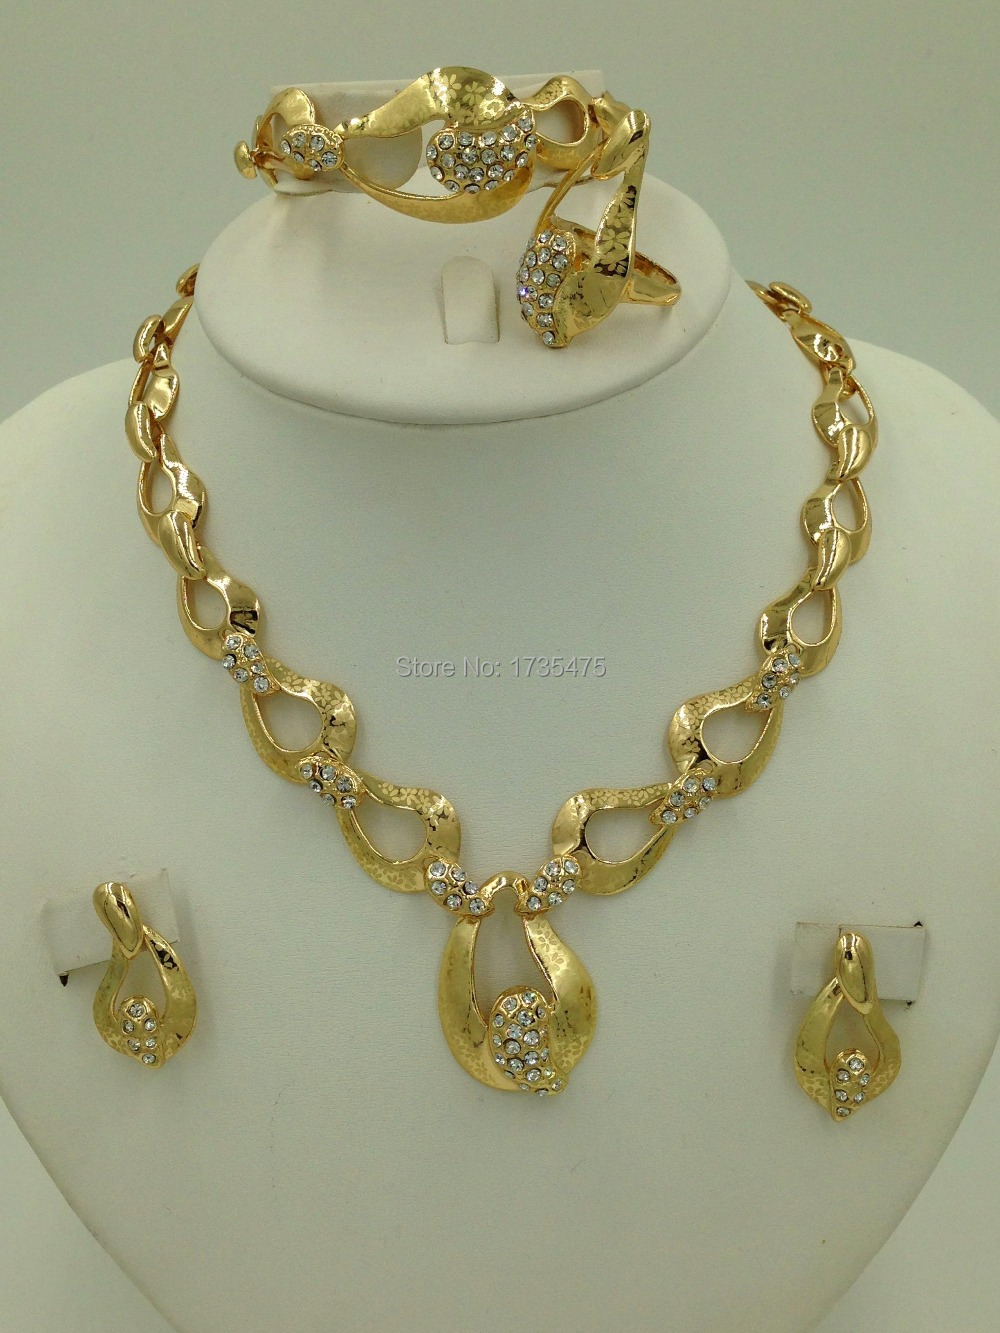 Charms Style 18K Gold Plated Jewelry Chunky Laser Flower Necklace Set Women Wedding Jewelry Set Dubai Gold Plated-in Jewelry Sets from Jewelry u0026 Accessories ... & Charms Style 18K Gold Plated Jewelry Chunky Laser Flower Necklace ...